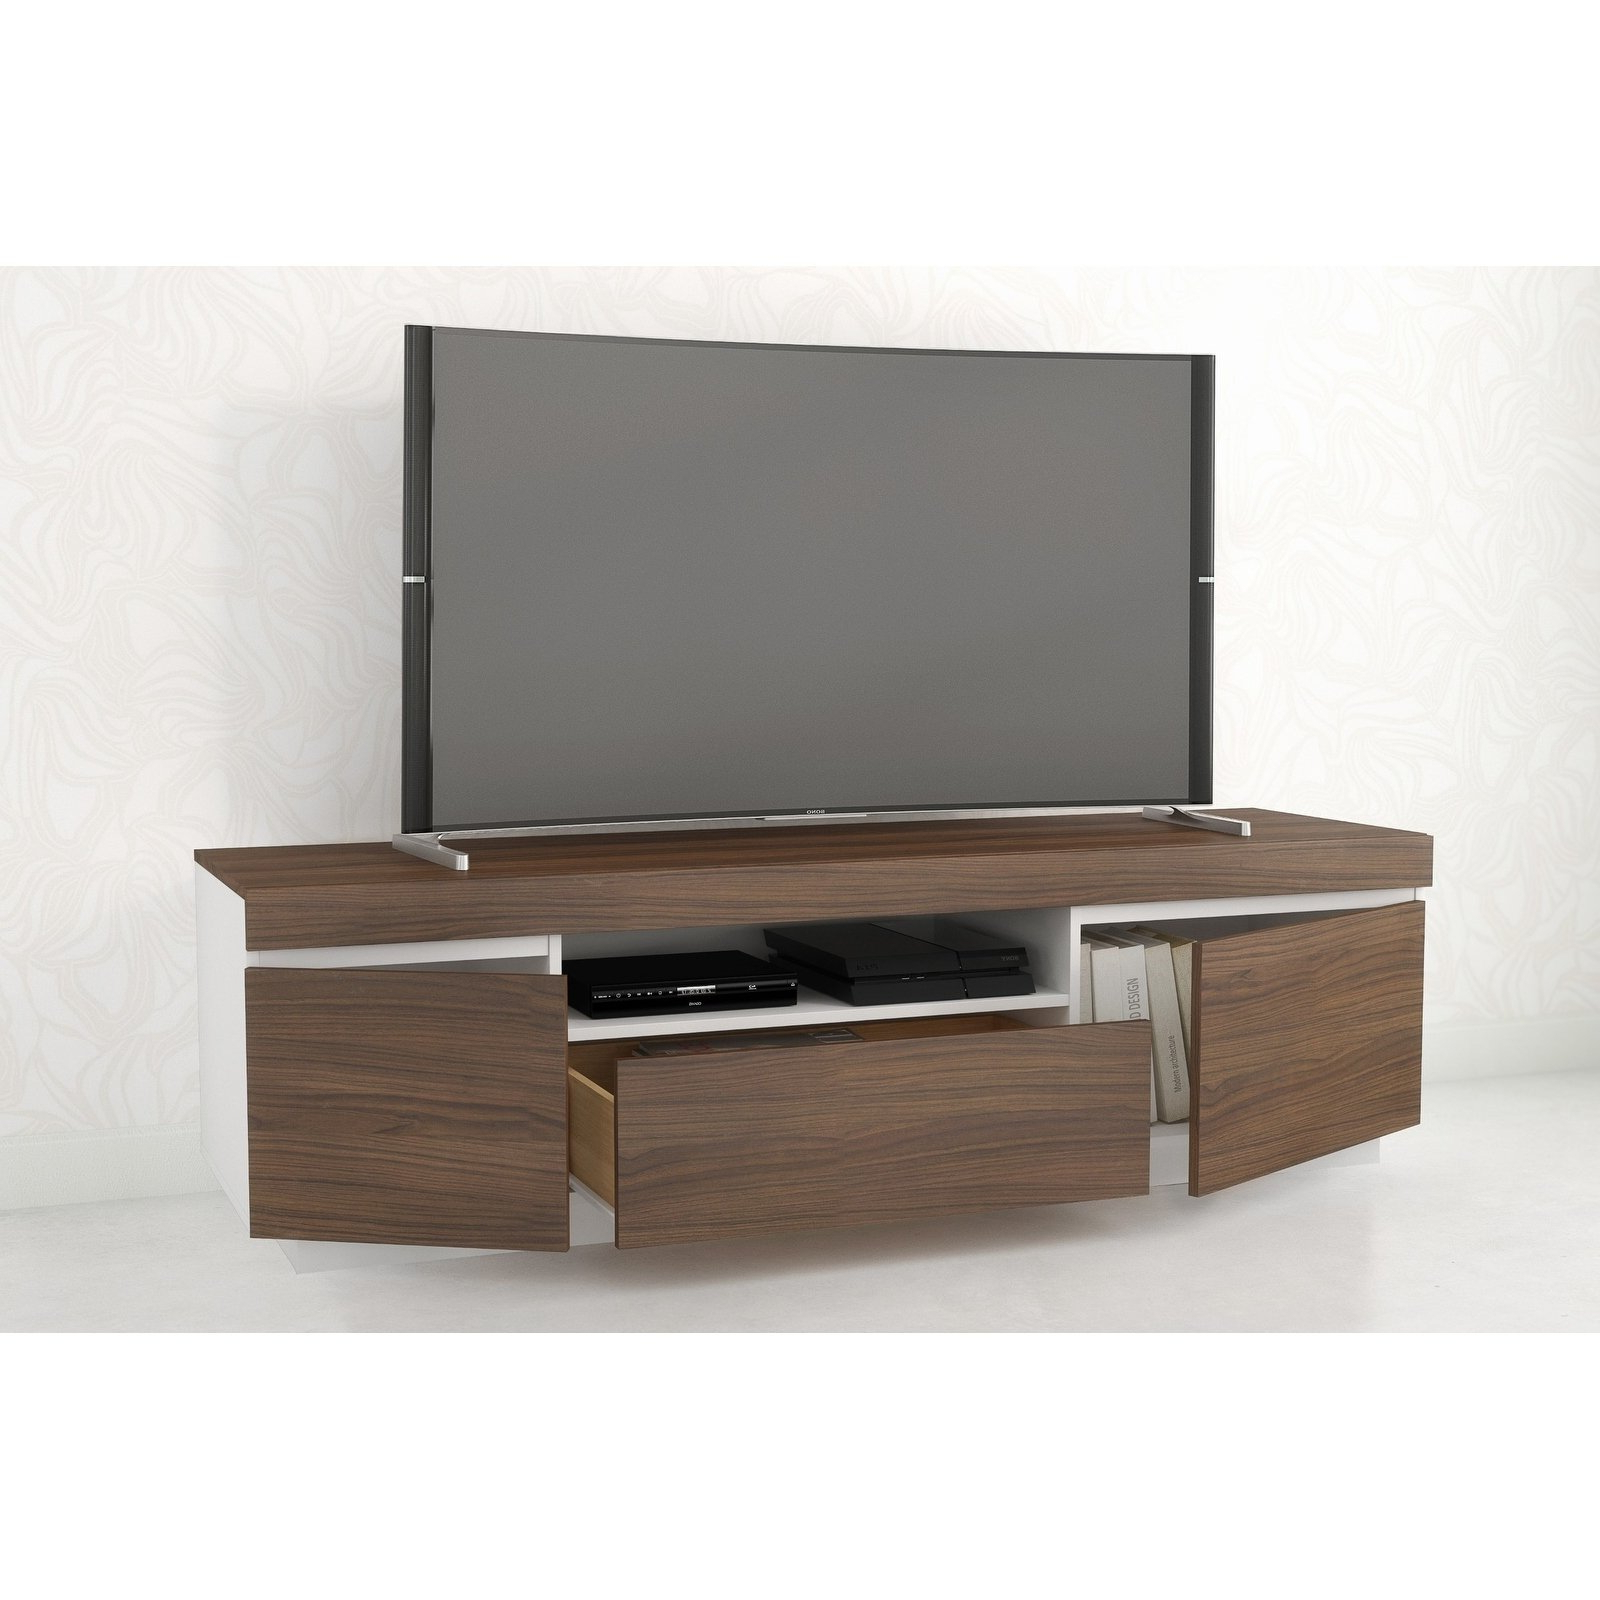 Nexera Tv Stands With Regard To Most Up To Date Shop Nexera Cali Tv Stand, Walnut And White – Free Shipping Today (Gallery 13 of 20)